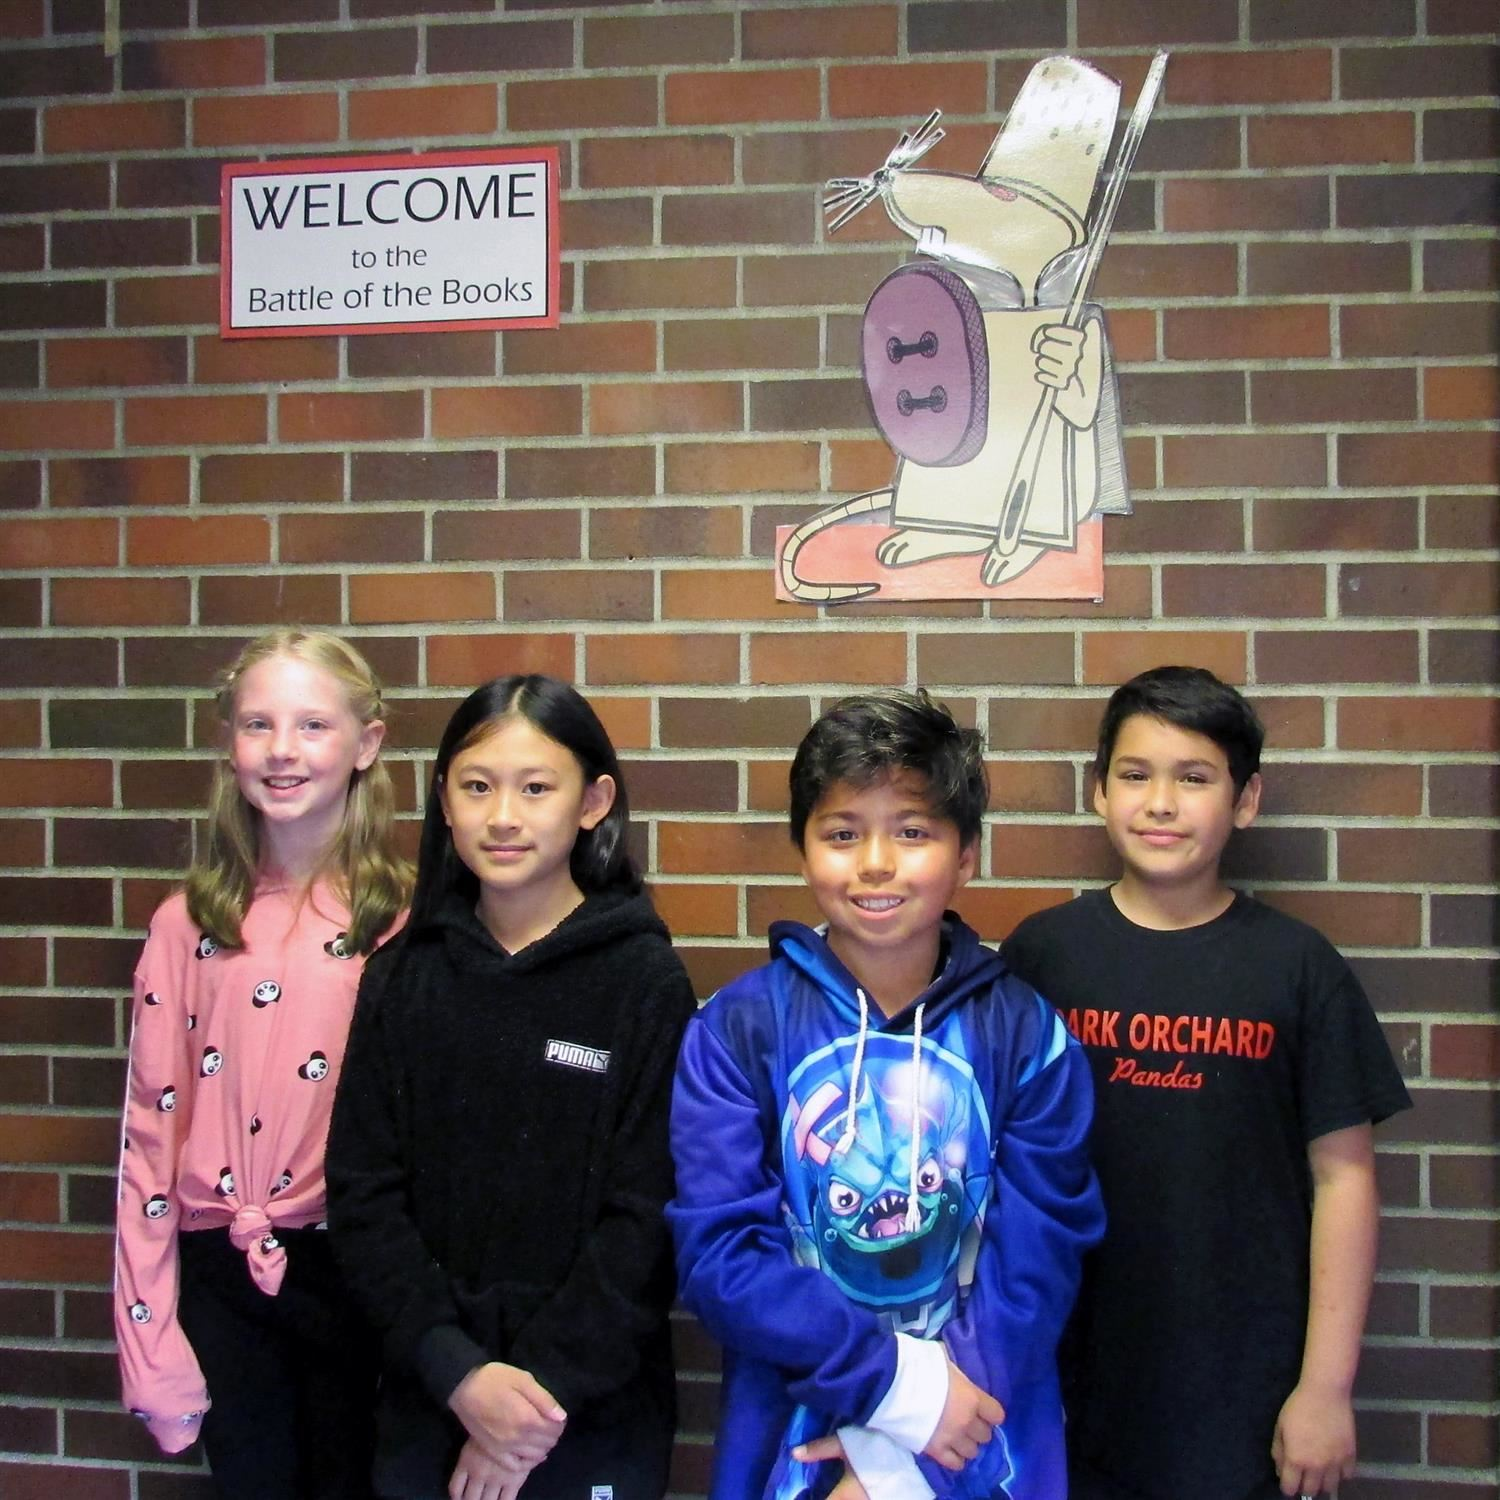 Rylee Mitchell, Sa Hoang, Ben Rolls, & Shammy Paz at the Battle of the Books event